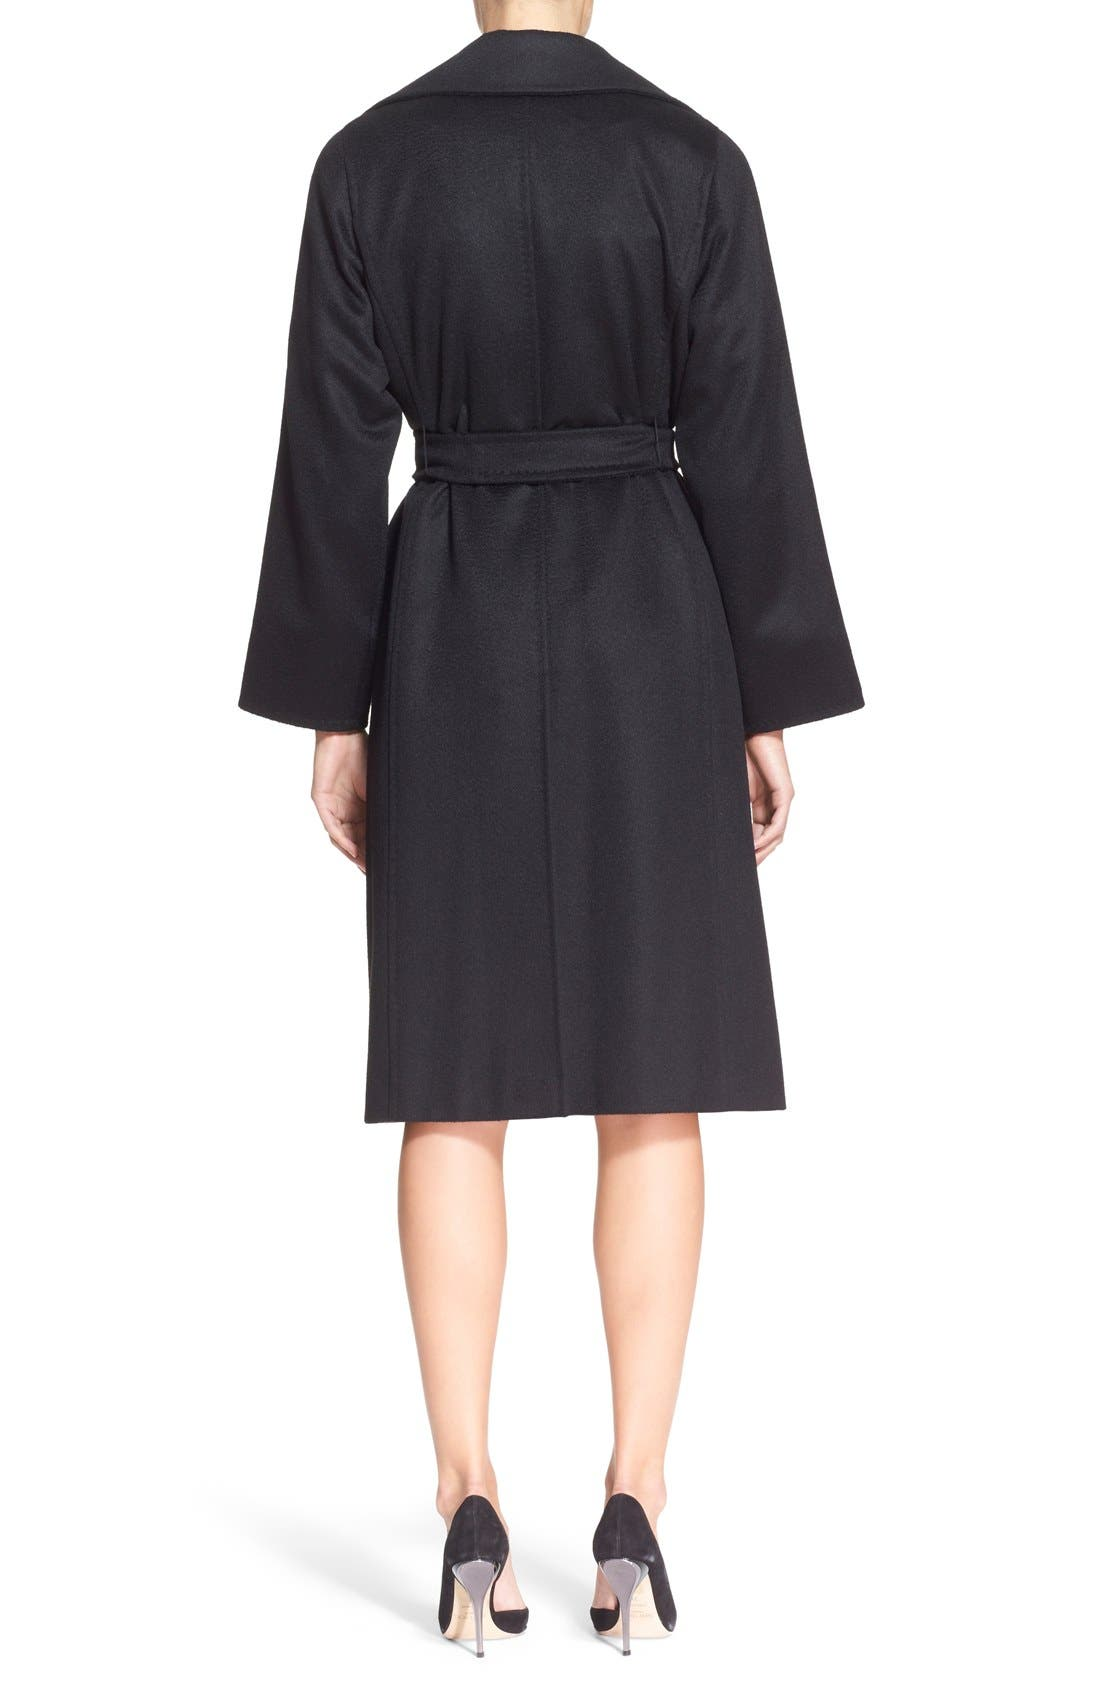 'Manuela' Camel Hair Coat,                             Alternate thumbnail 2, color,                             BLACK